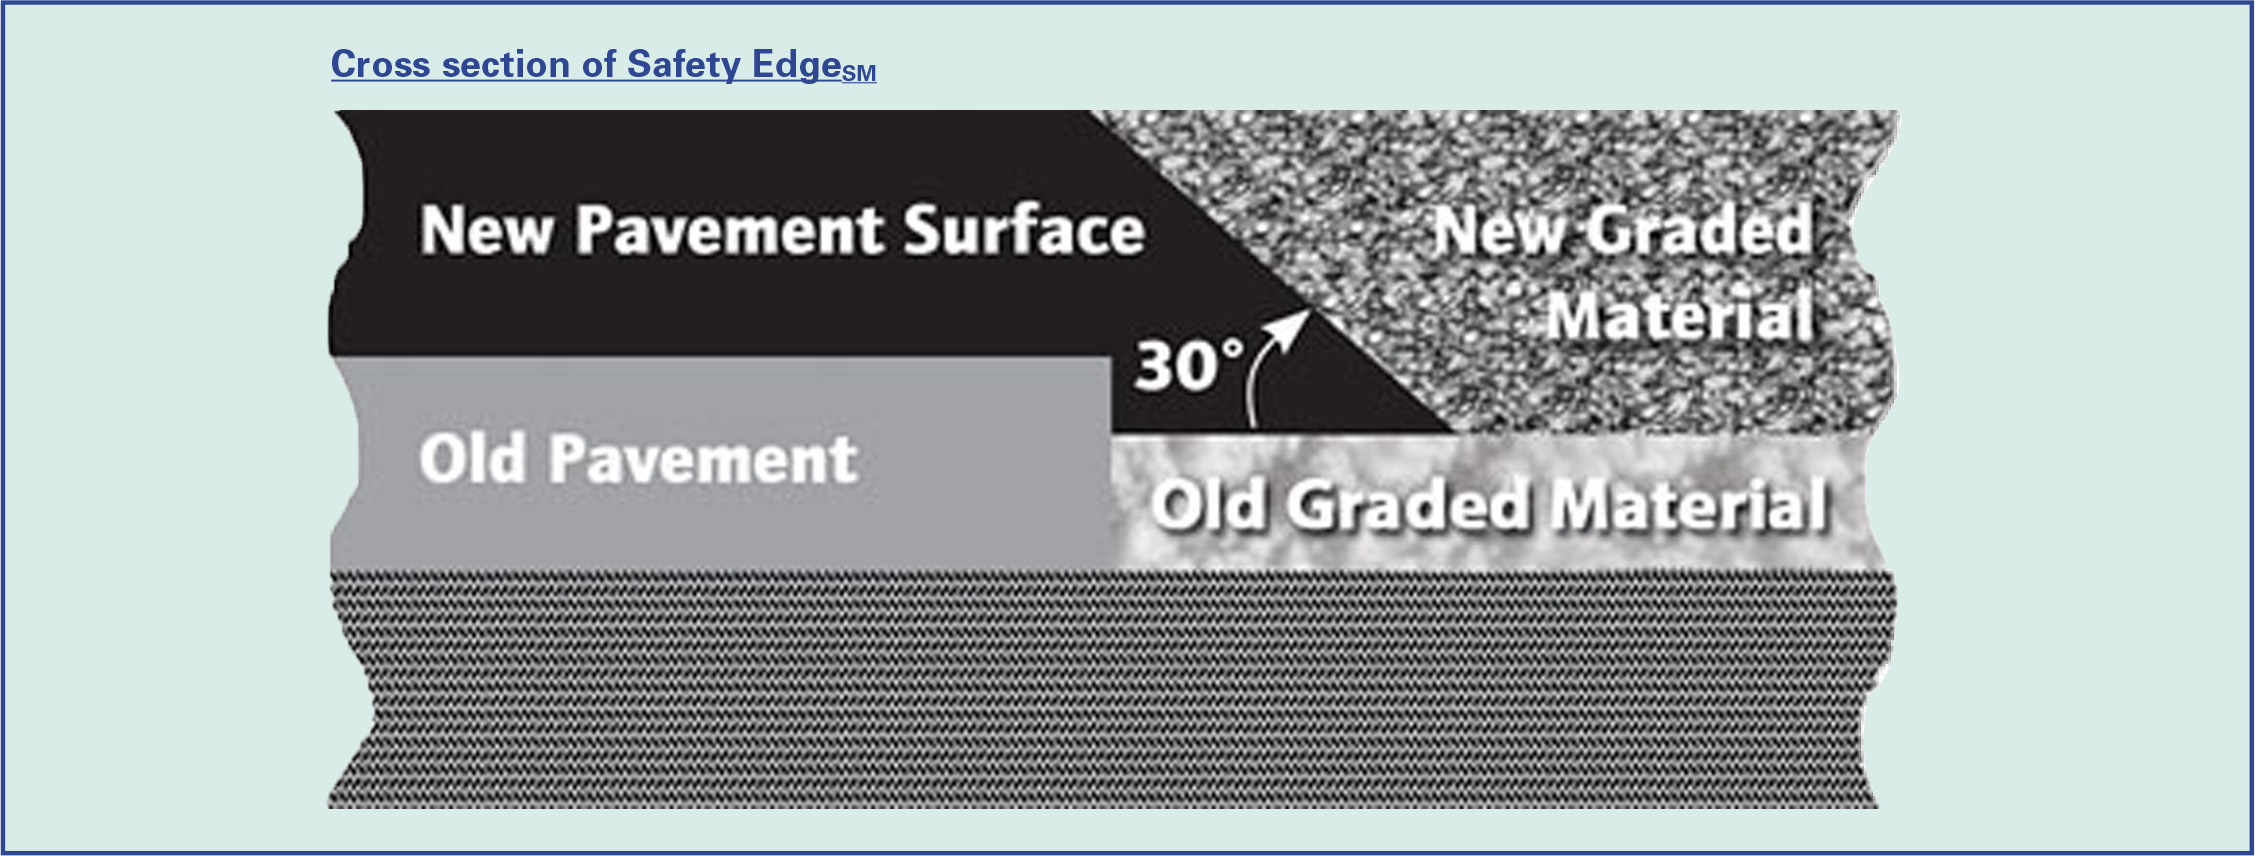 Figure 2: Cross section of Safety Edge (SM)